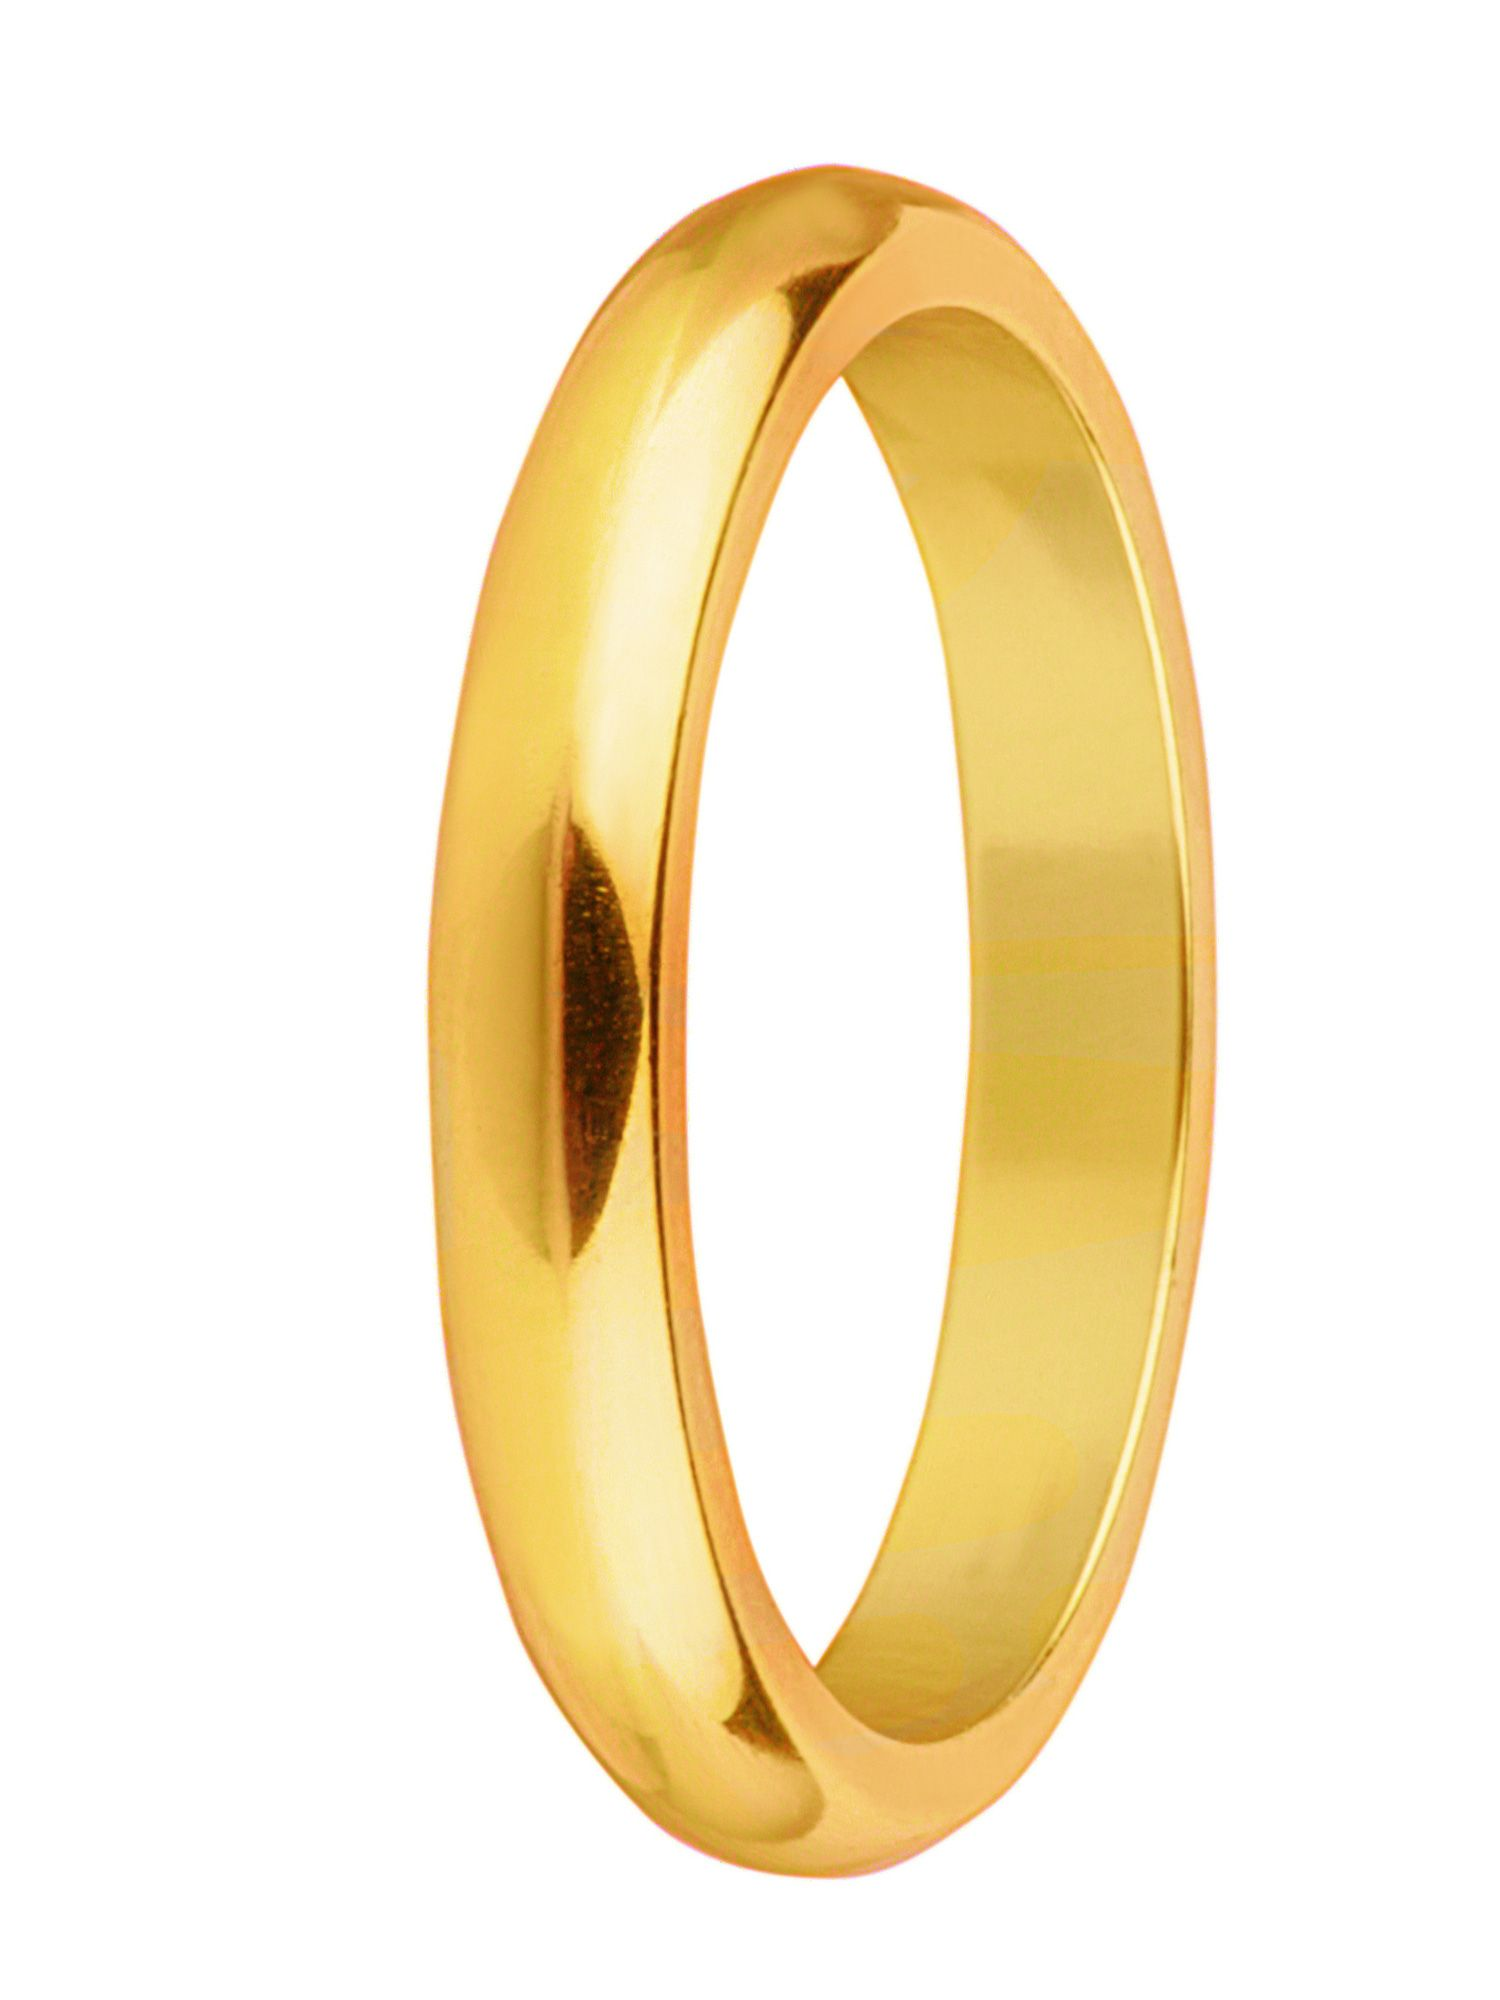 Goldsmiths Brides 18ct gold heavy court 3mm wedding ring, Gold